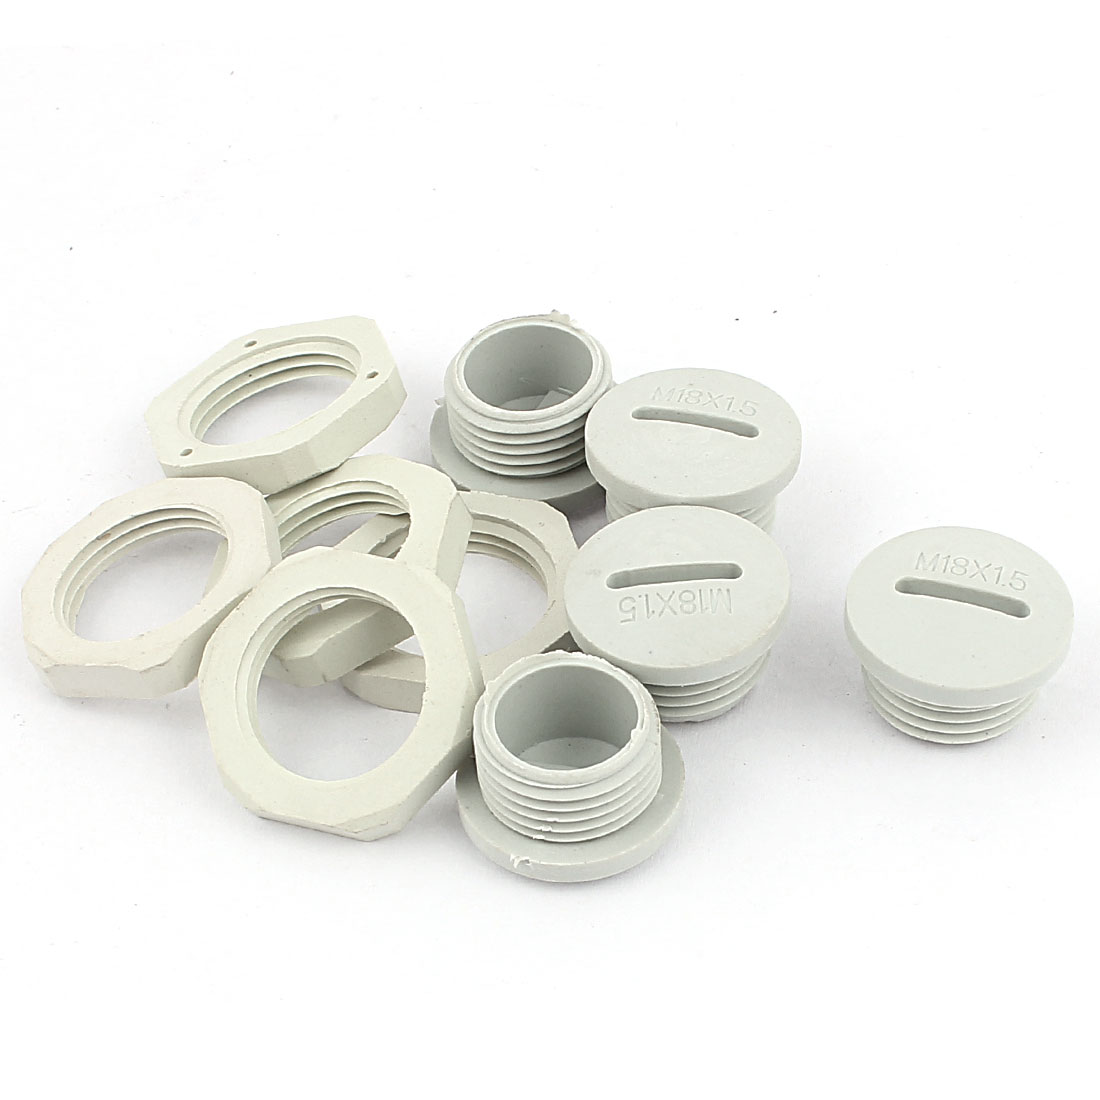 M18 x 1.5cm Plastic Round Head Pipe Plug Adapter White 5Pcs